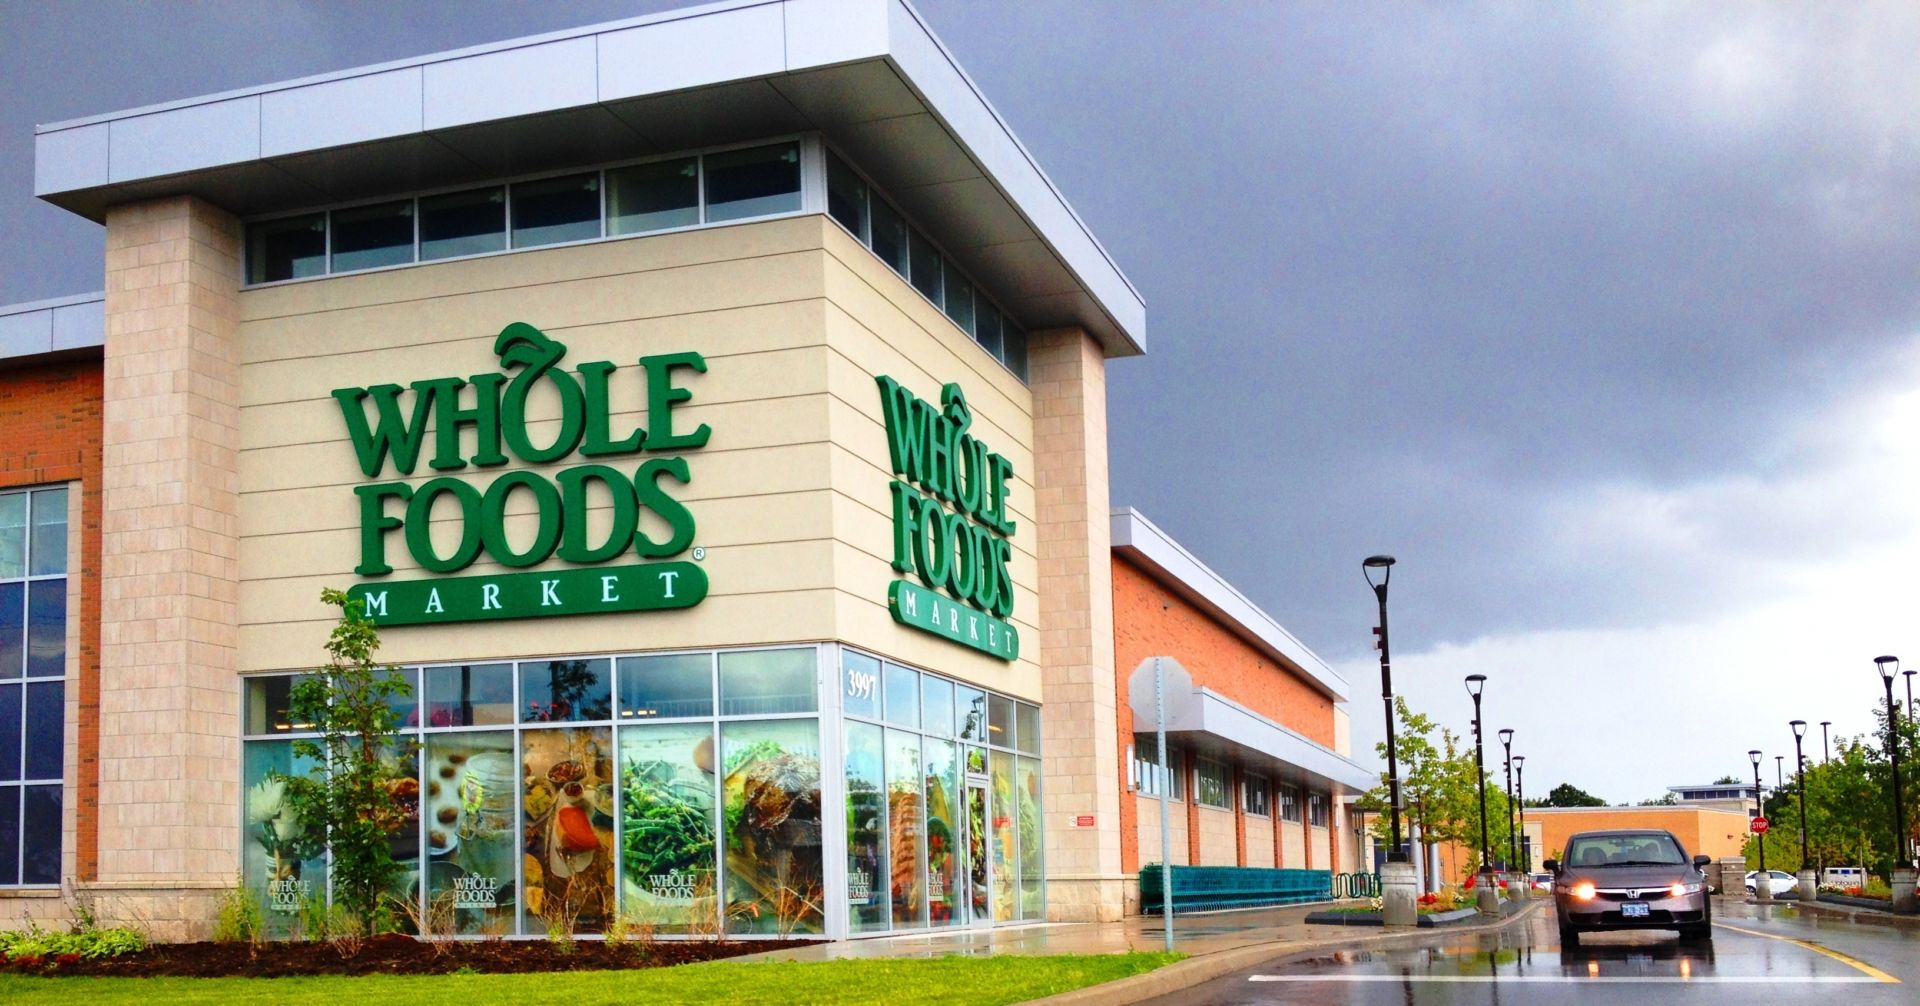 1Whole Foods